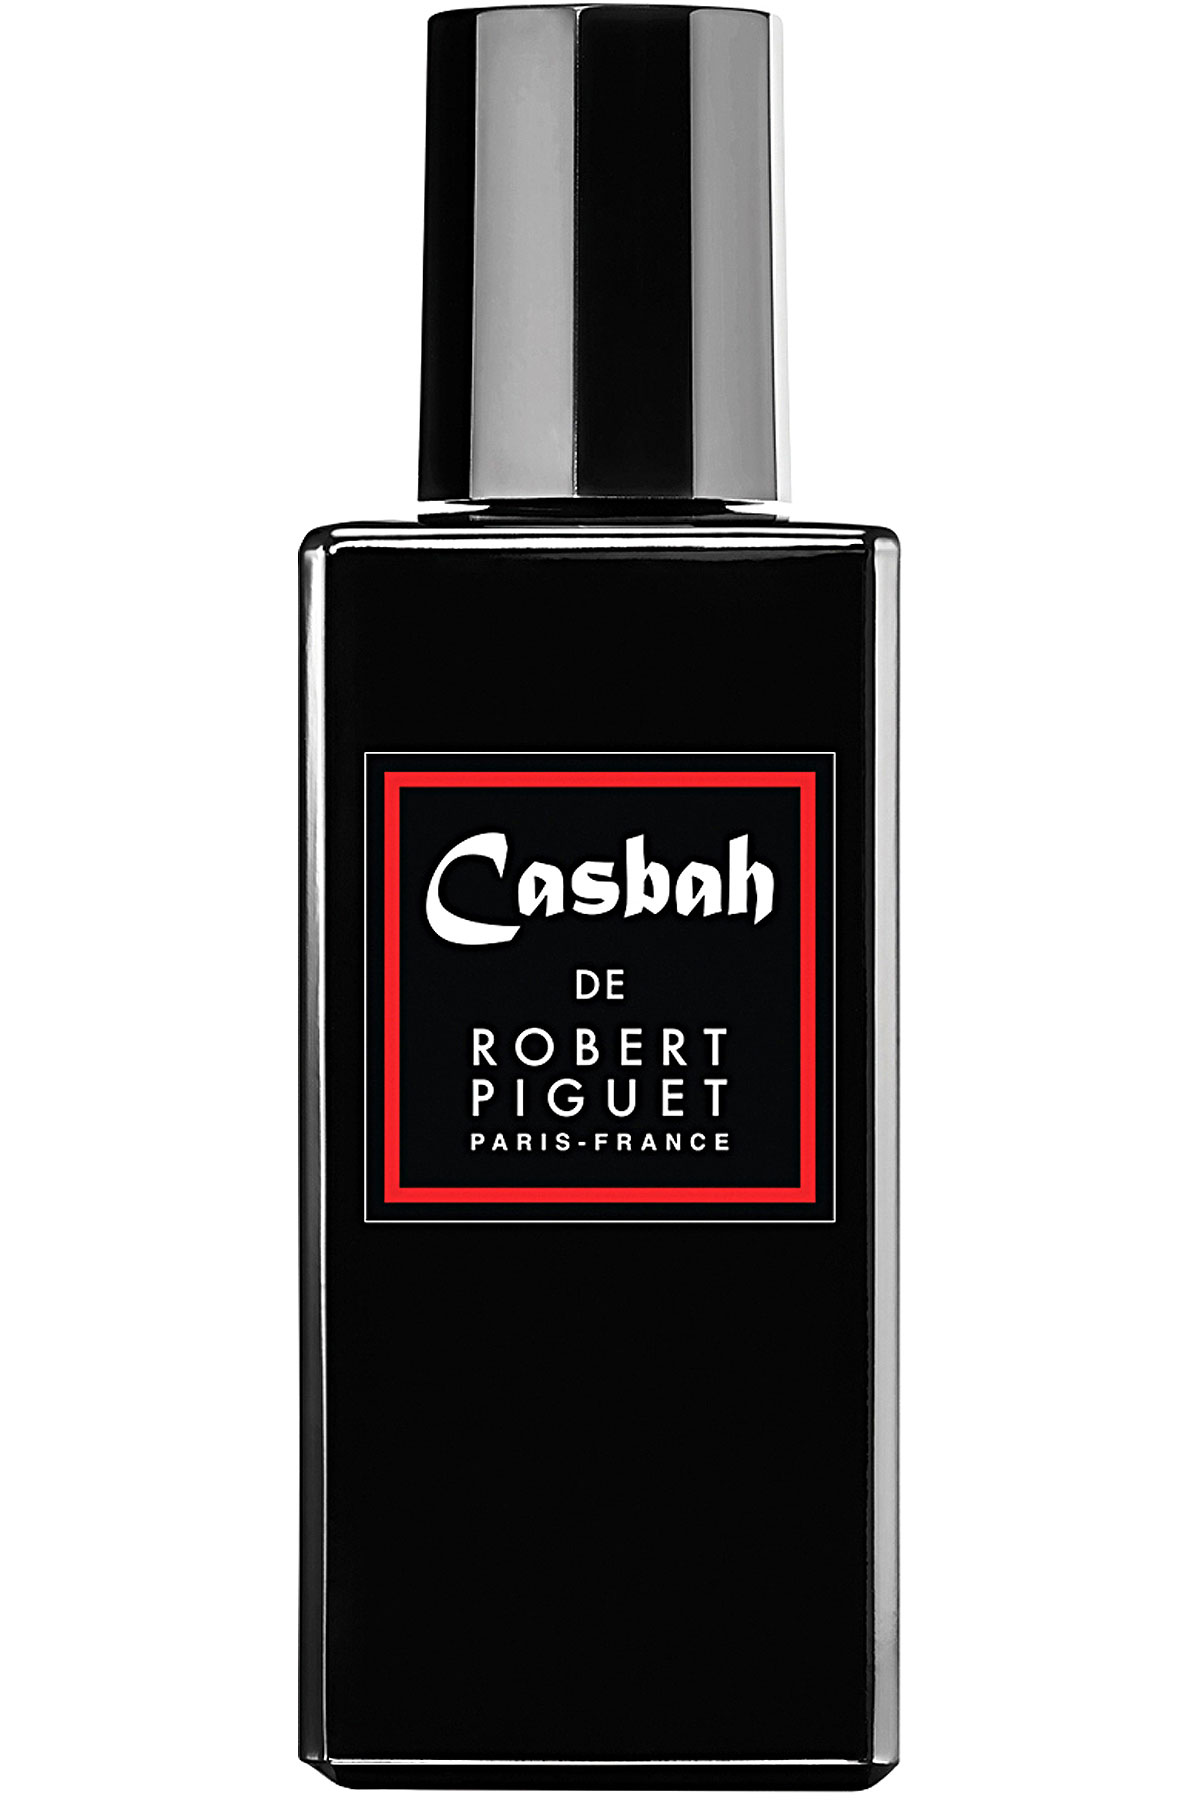 Robert Piguet Fragrances for Men On Sale, Casbah - Eau De Parfum - 100 Ml, 2019, 100 ml